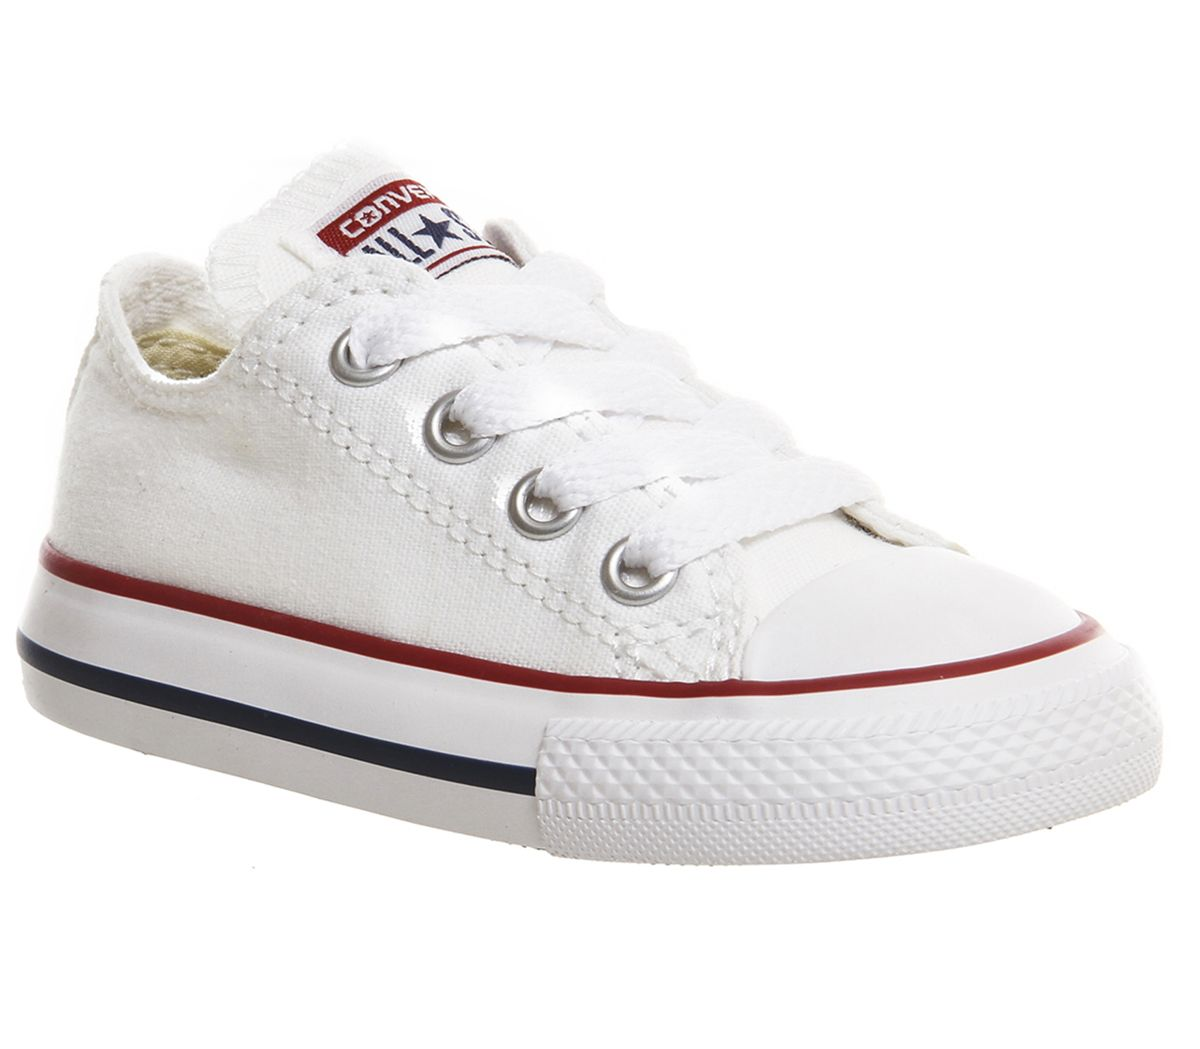 2converse all star bambina basse